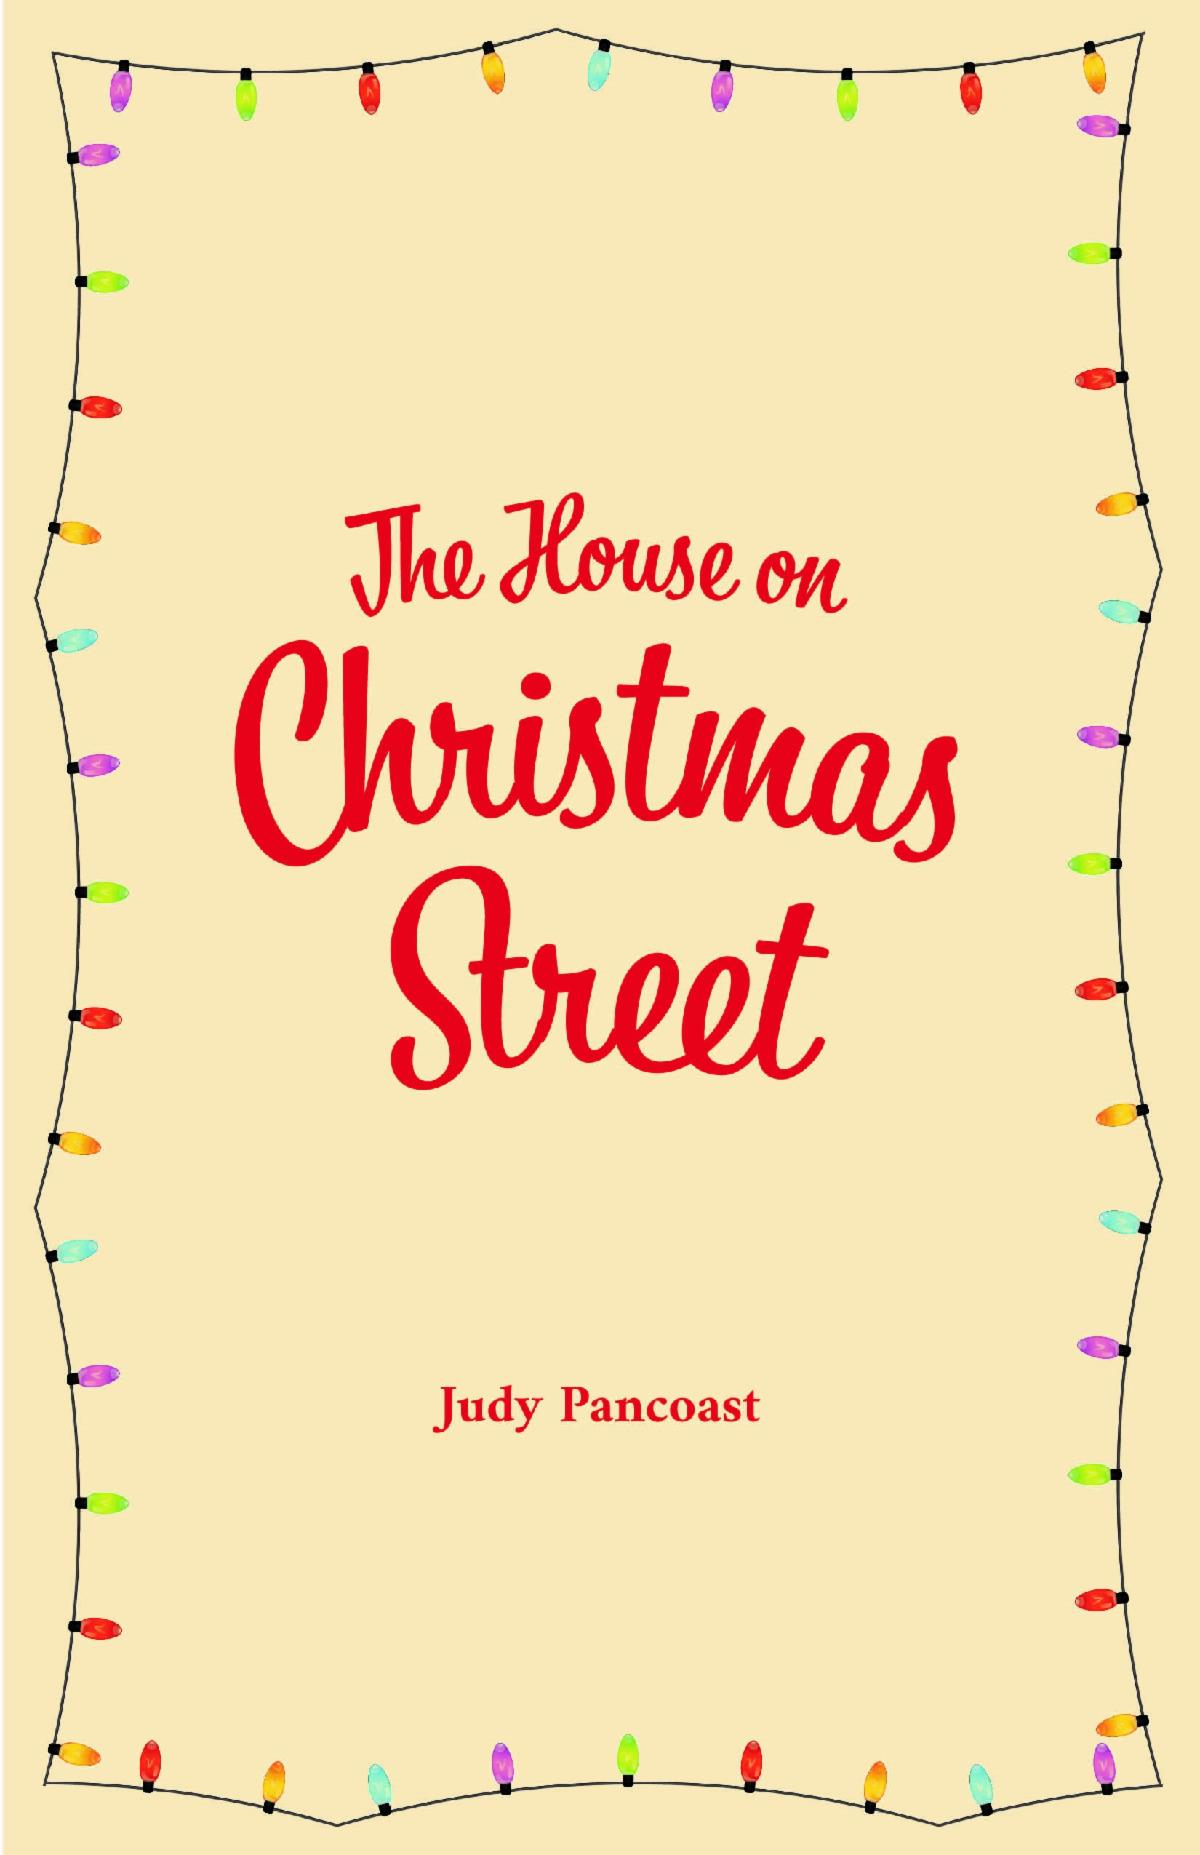 The House on Christmas Street book cover with border of holiday lights